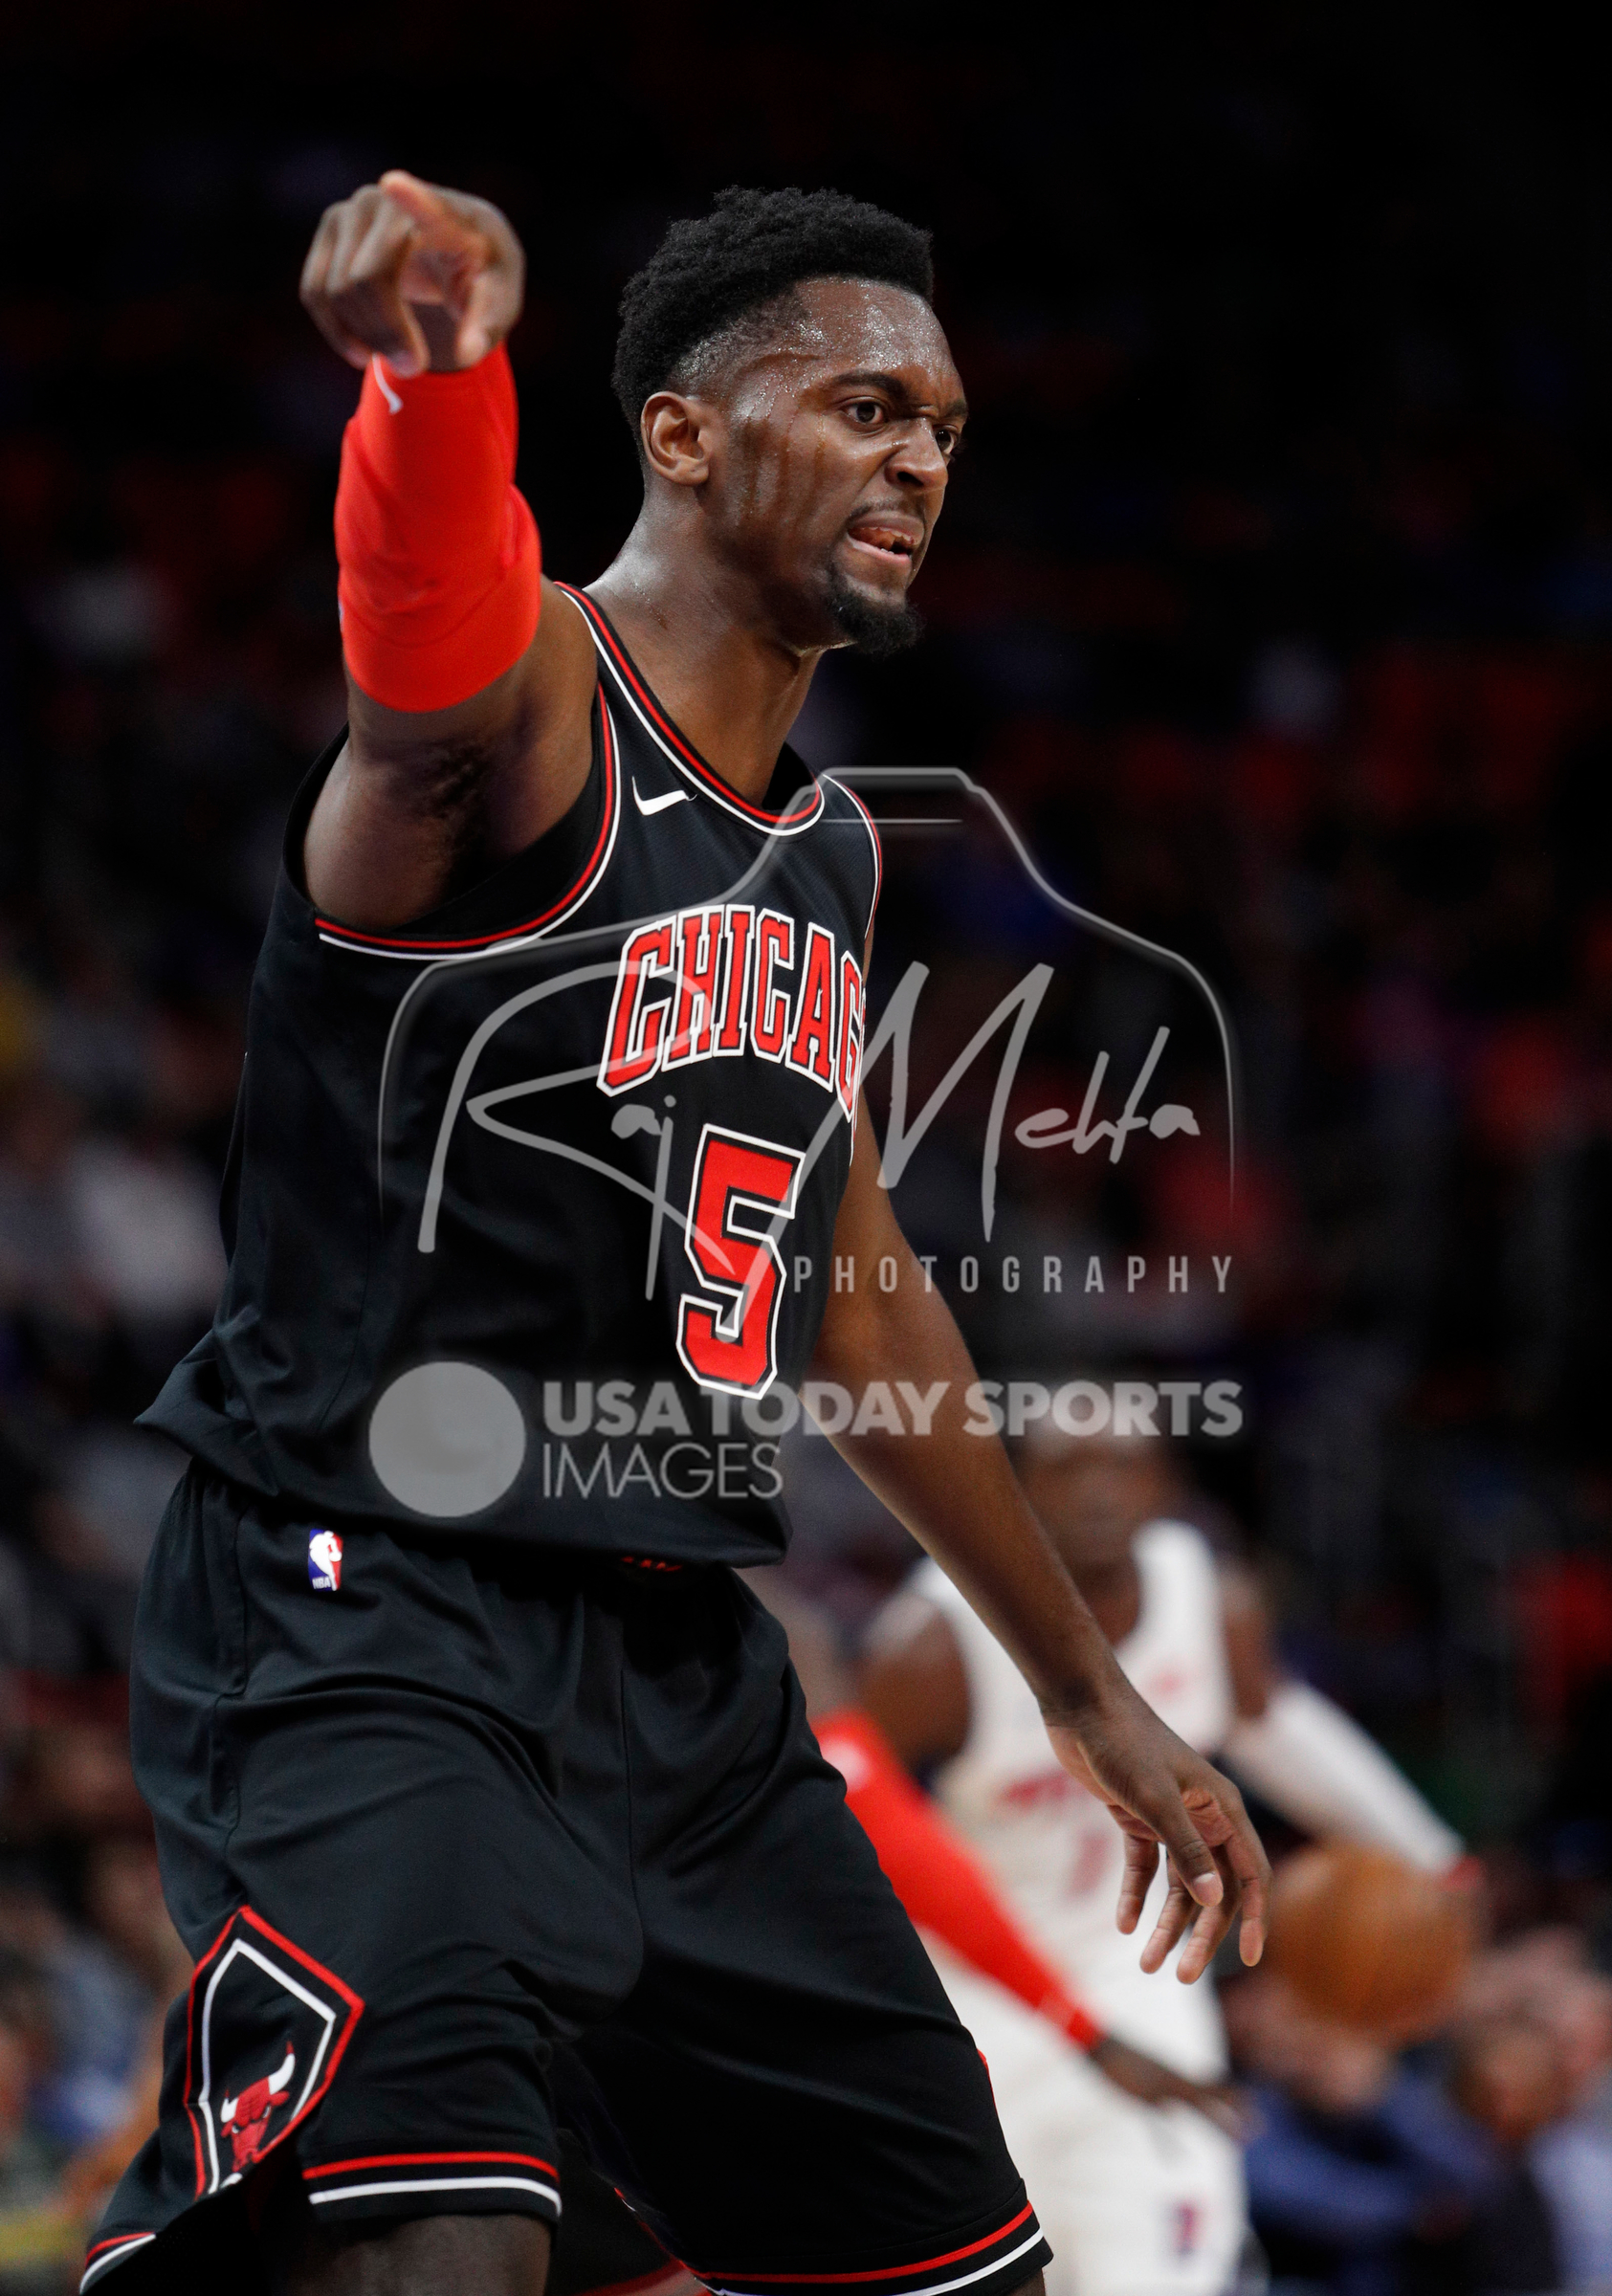 Mar 24, 2018; Detroit, MI, USA; Chicago Bulls forward Bobby Portis (5) points down court during the second quarter against the Detroit Pistons at Little Caesars Arena. Mandatory Credit: Raj Mehta-USA TODAY Sports